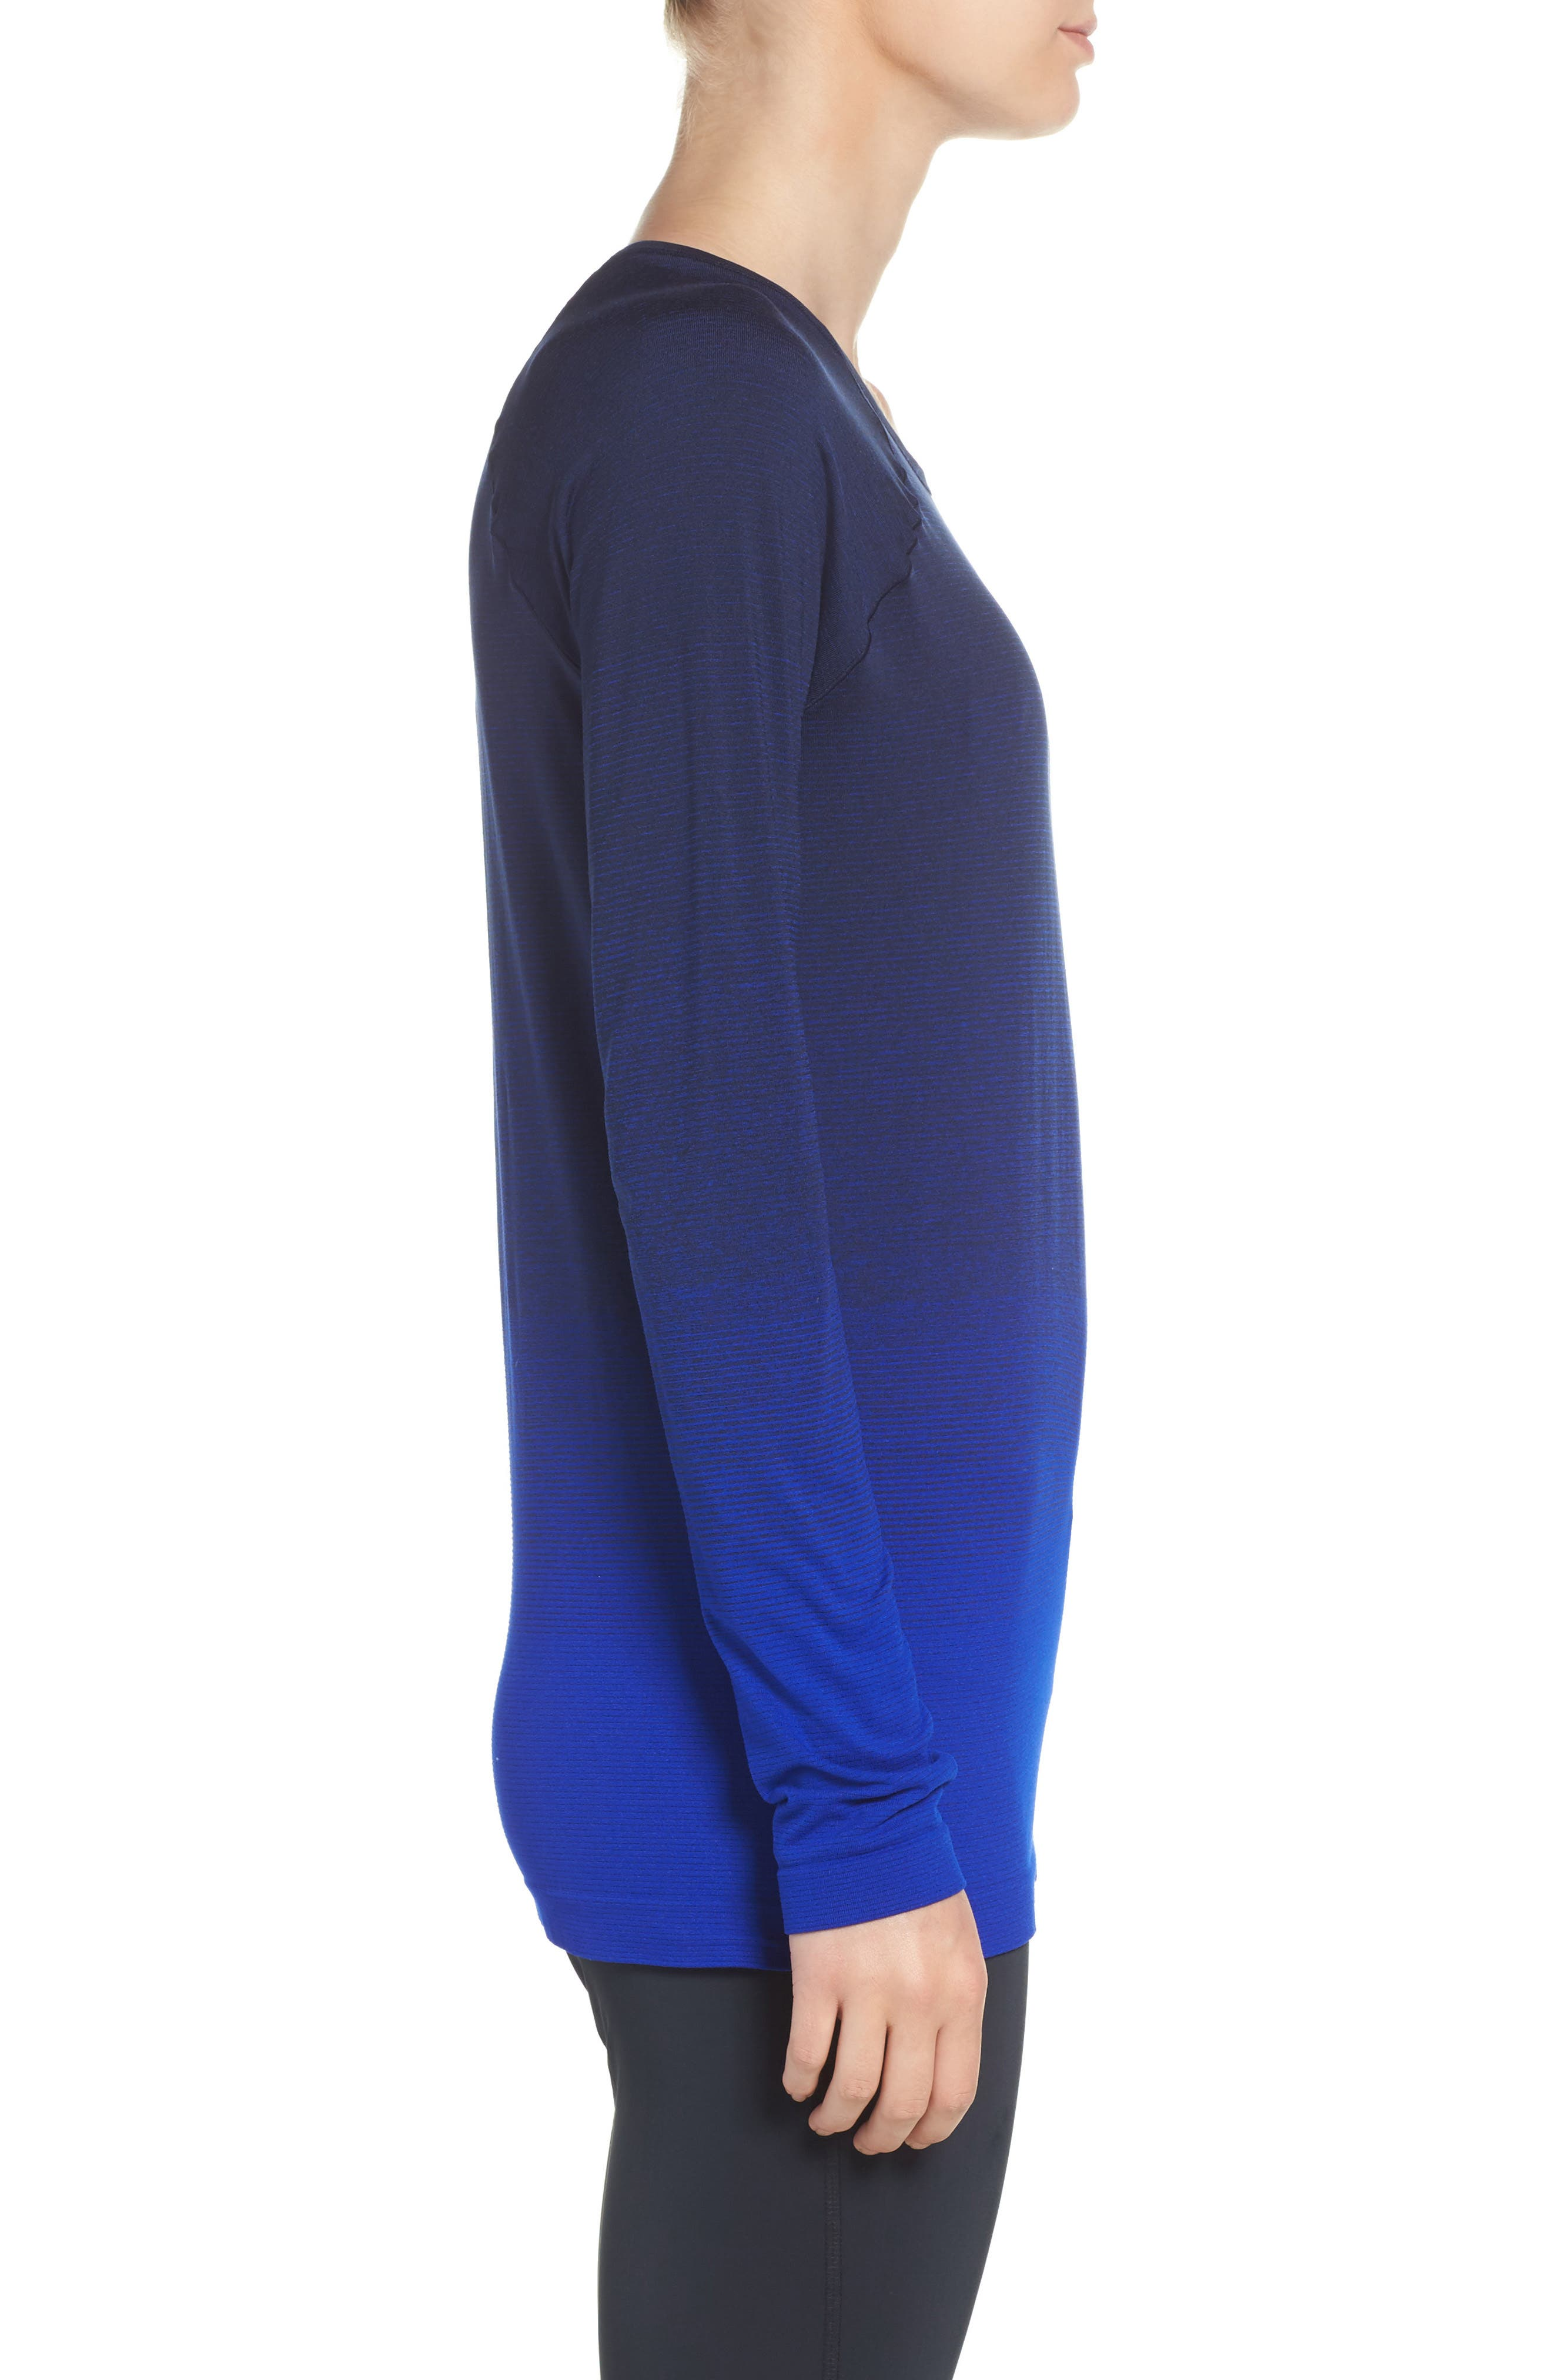 DriLayer Top,                             Alternate thumbnail 3, color,                             Navy/ Cobalt